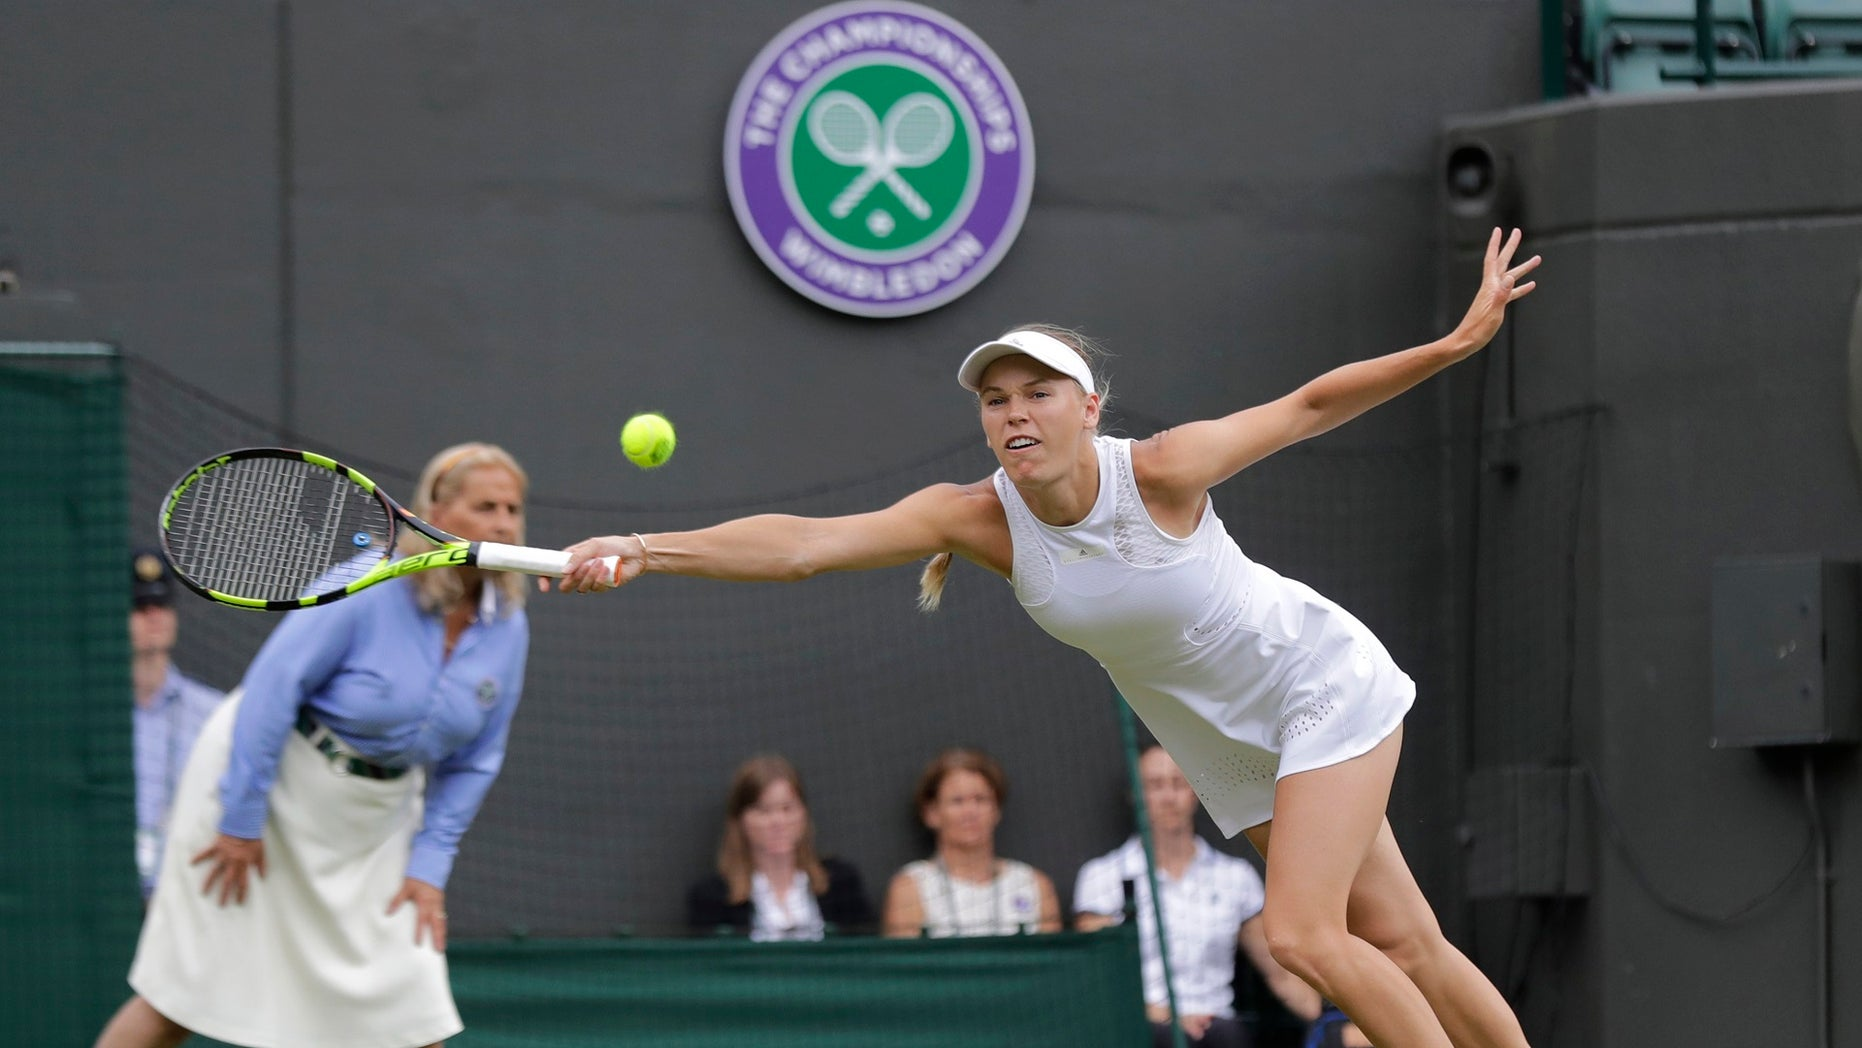 No. 2 Caroline Wozniacki was defeated at Wimbledon Wednesday by Ekaterina Makarova of Russia in the second-round match.